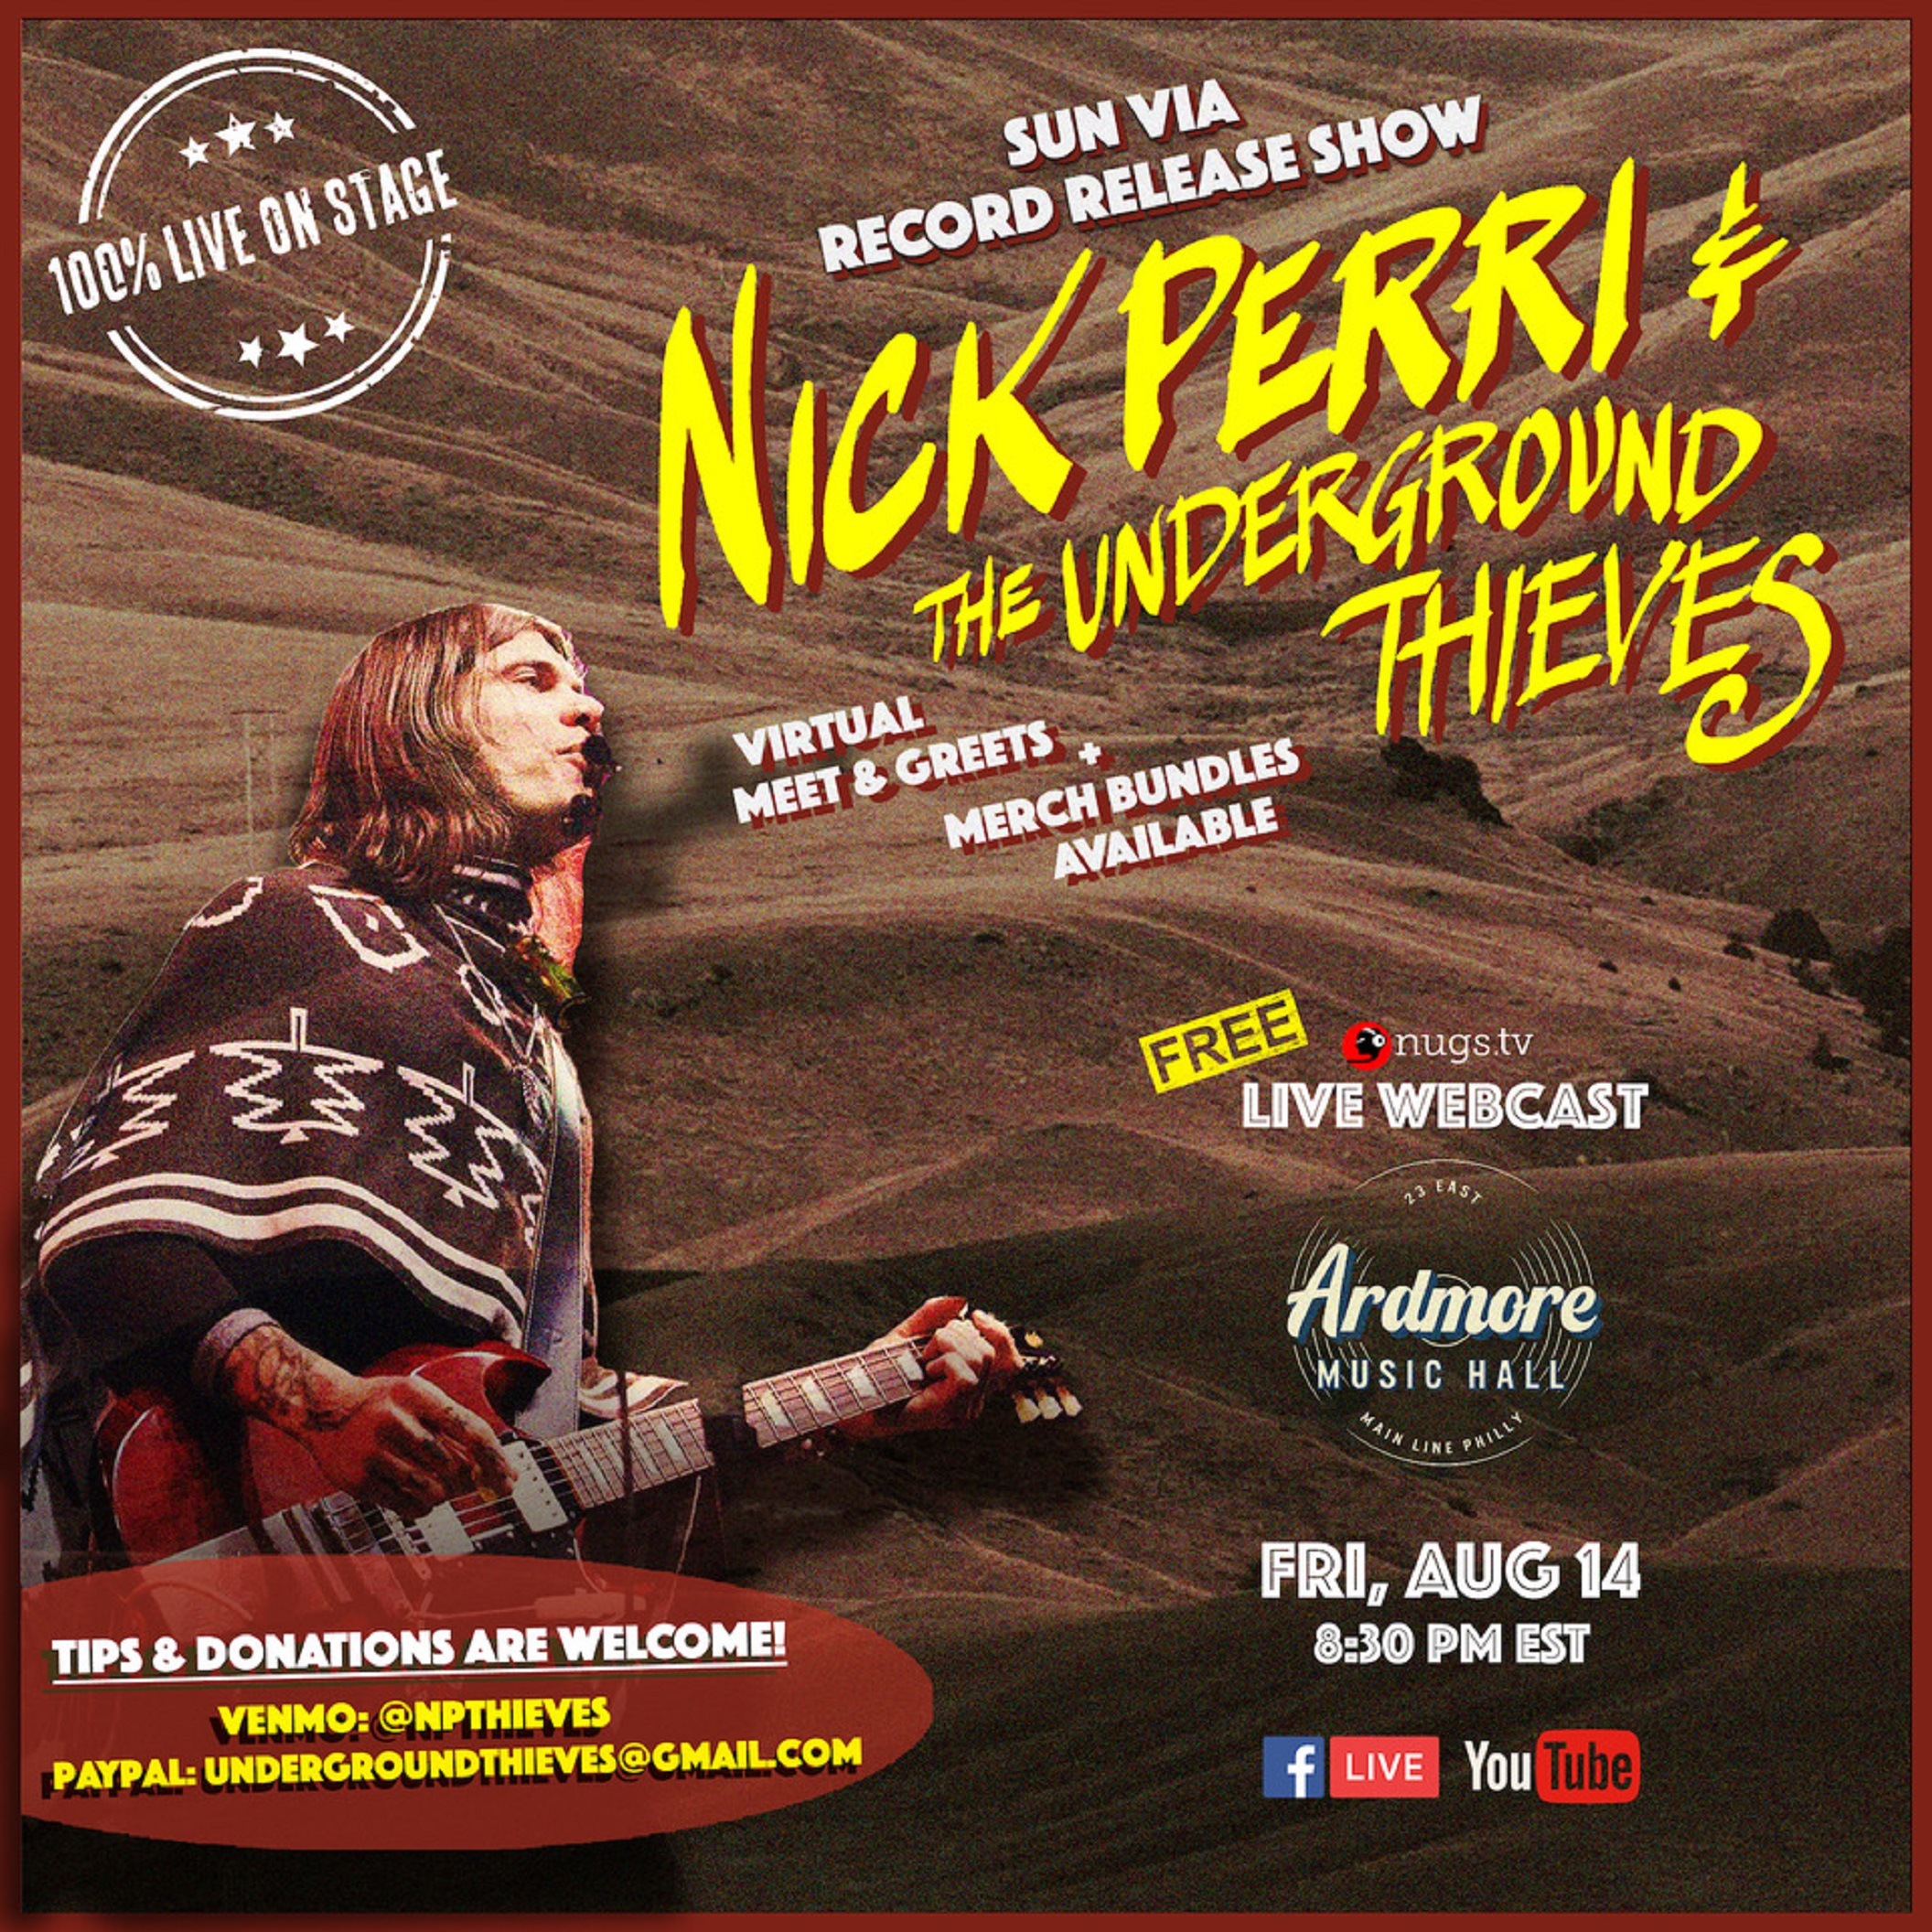 Nick Perri & The Underground Thieves livestream from the Ardmore Music Hall